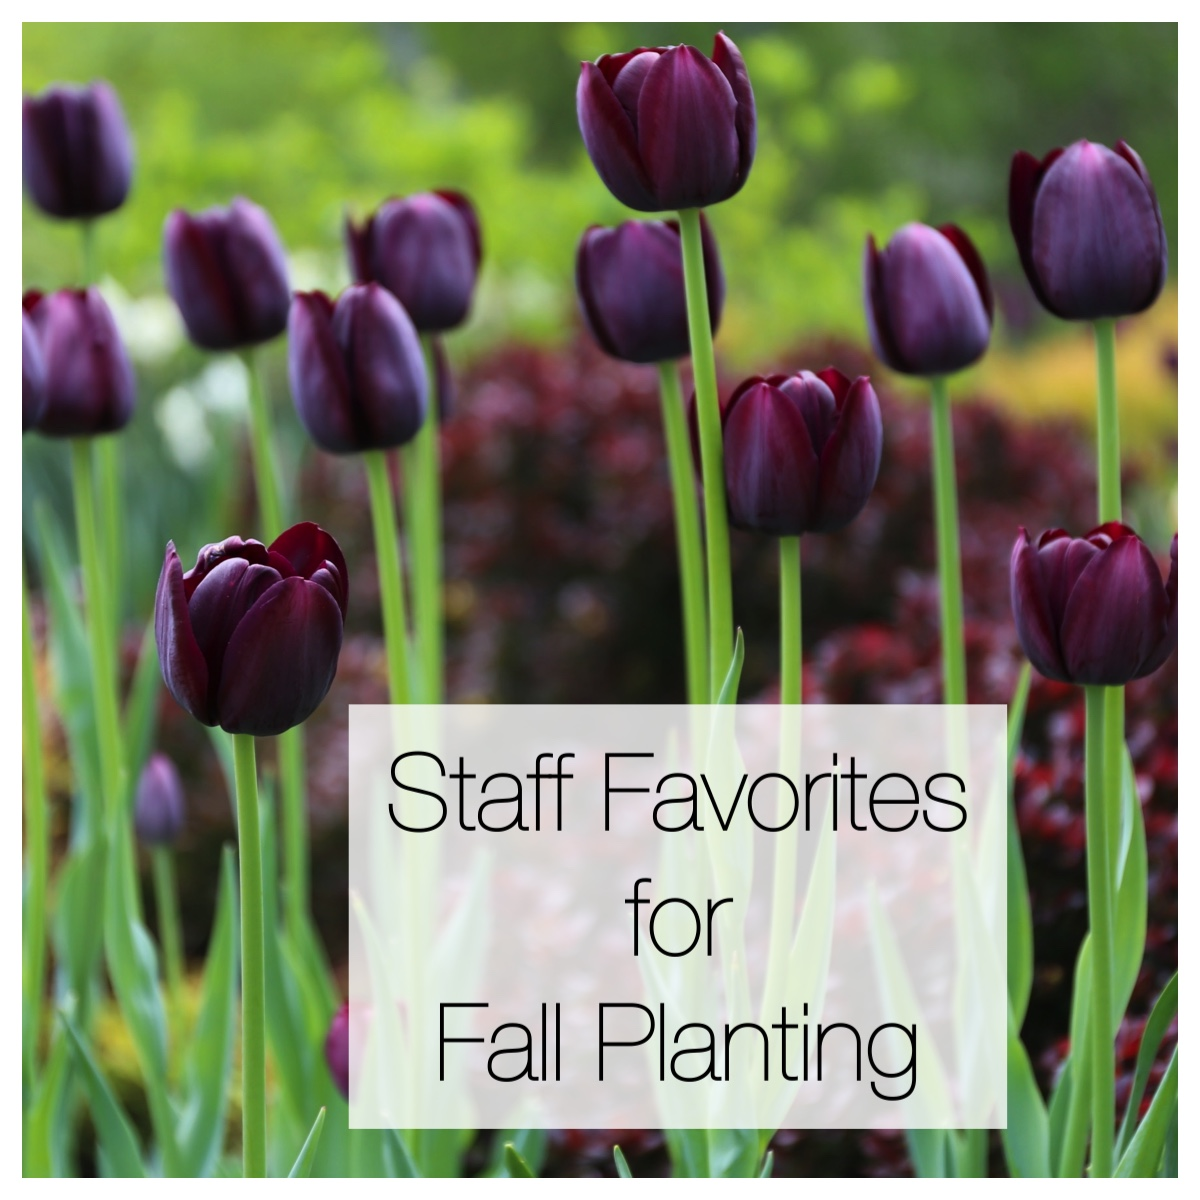 This Year's Staff Favorites for Fall Planting